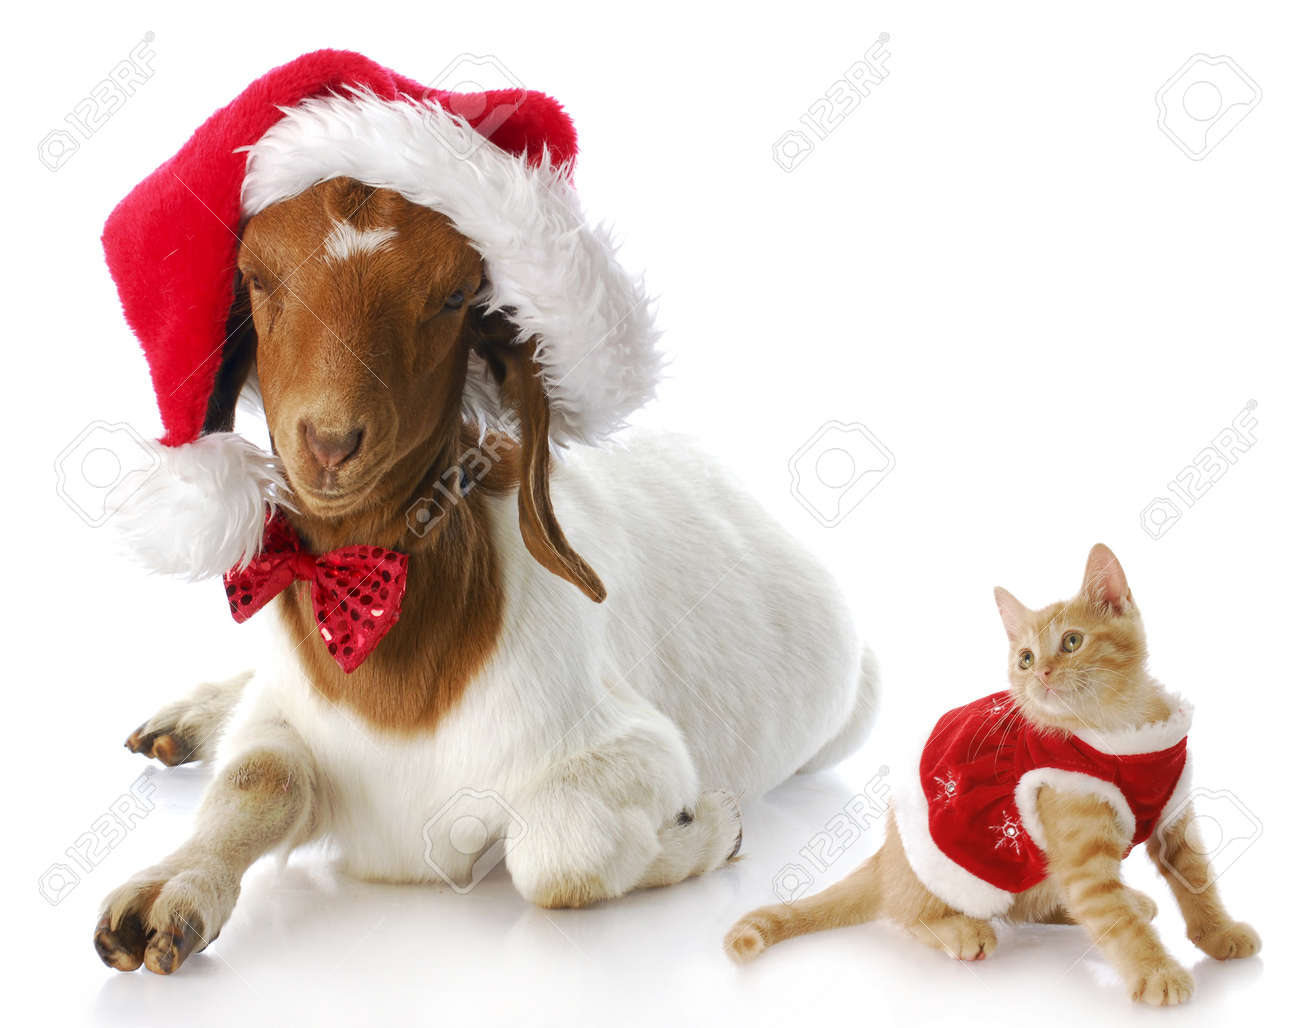 Christmas Goat.Cute Kitten In Christmas Dress Looking At Goat Dressed Up In